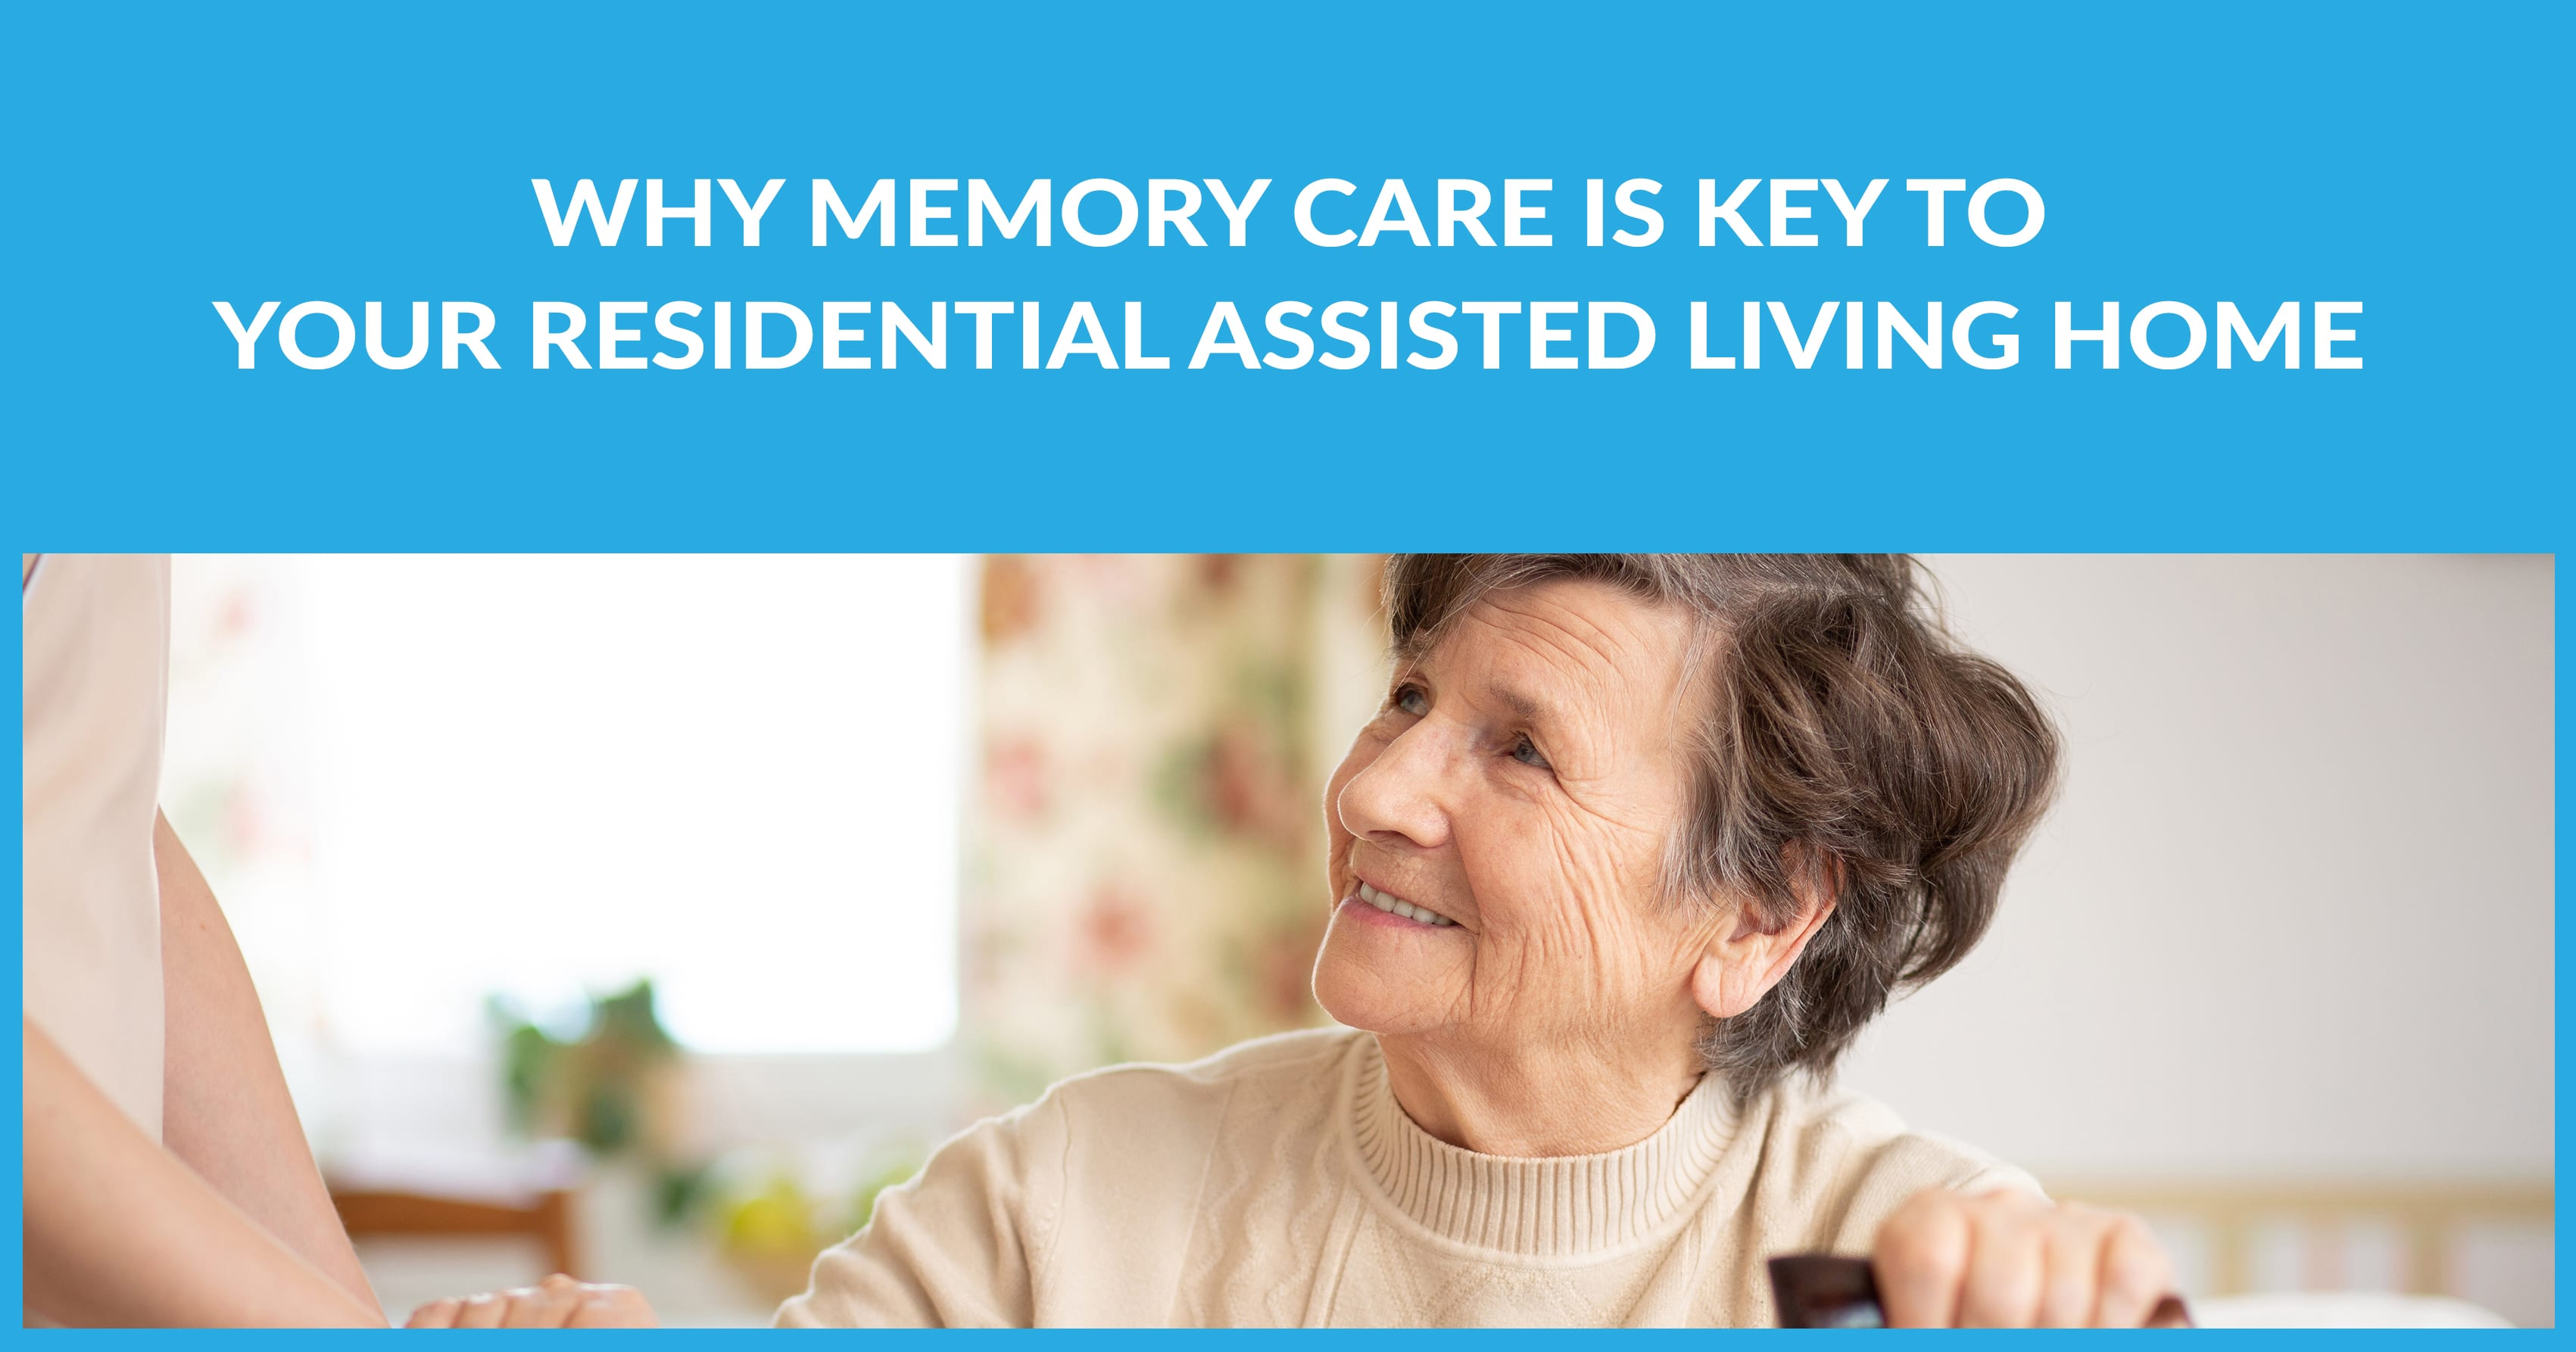 Why Memory Care Is Key To Your Residential Assisted Living Home